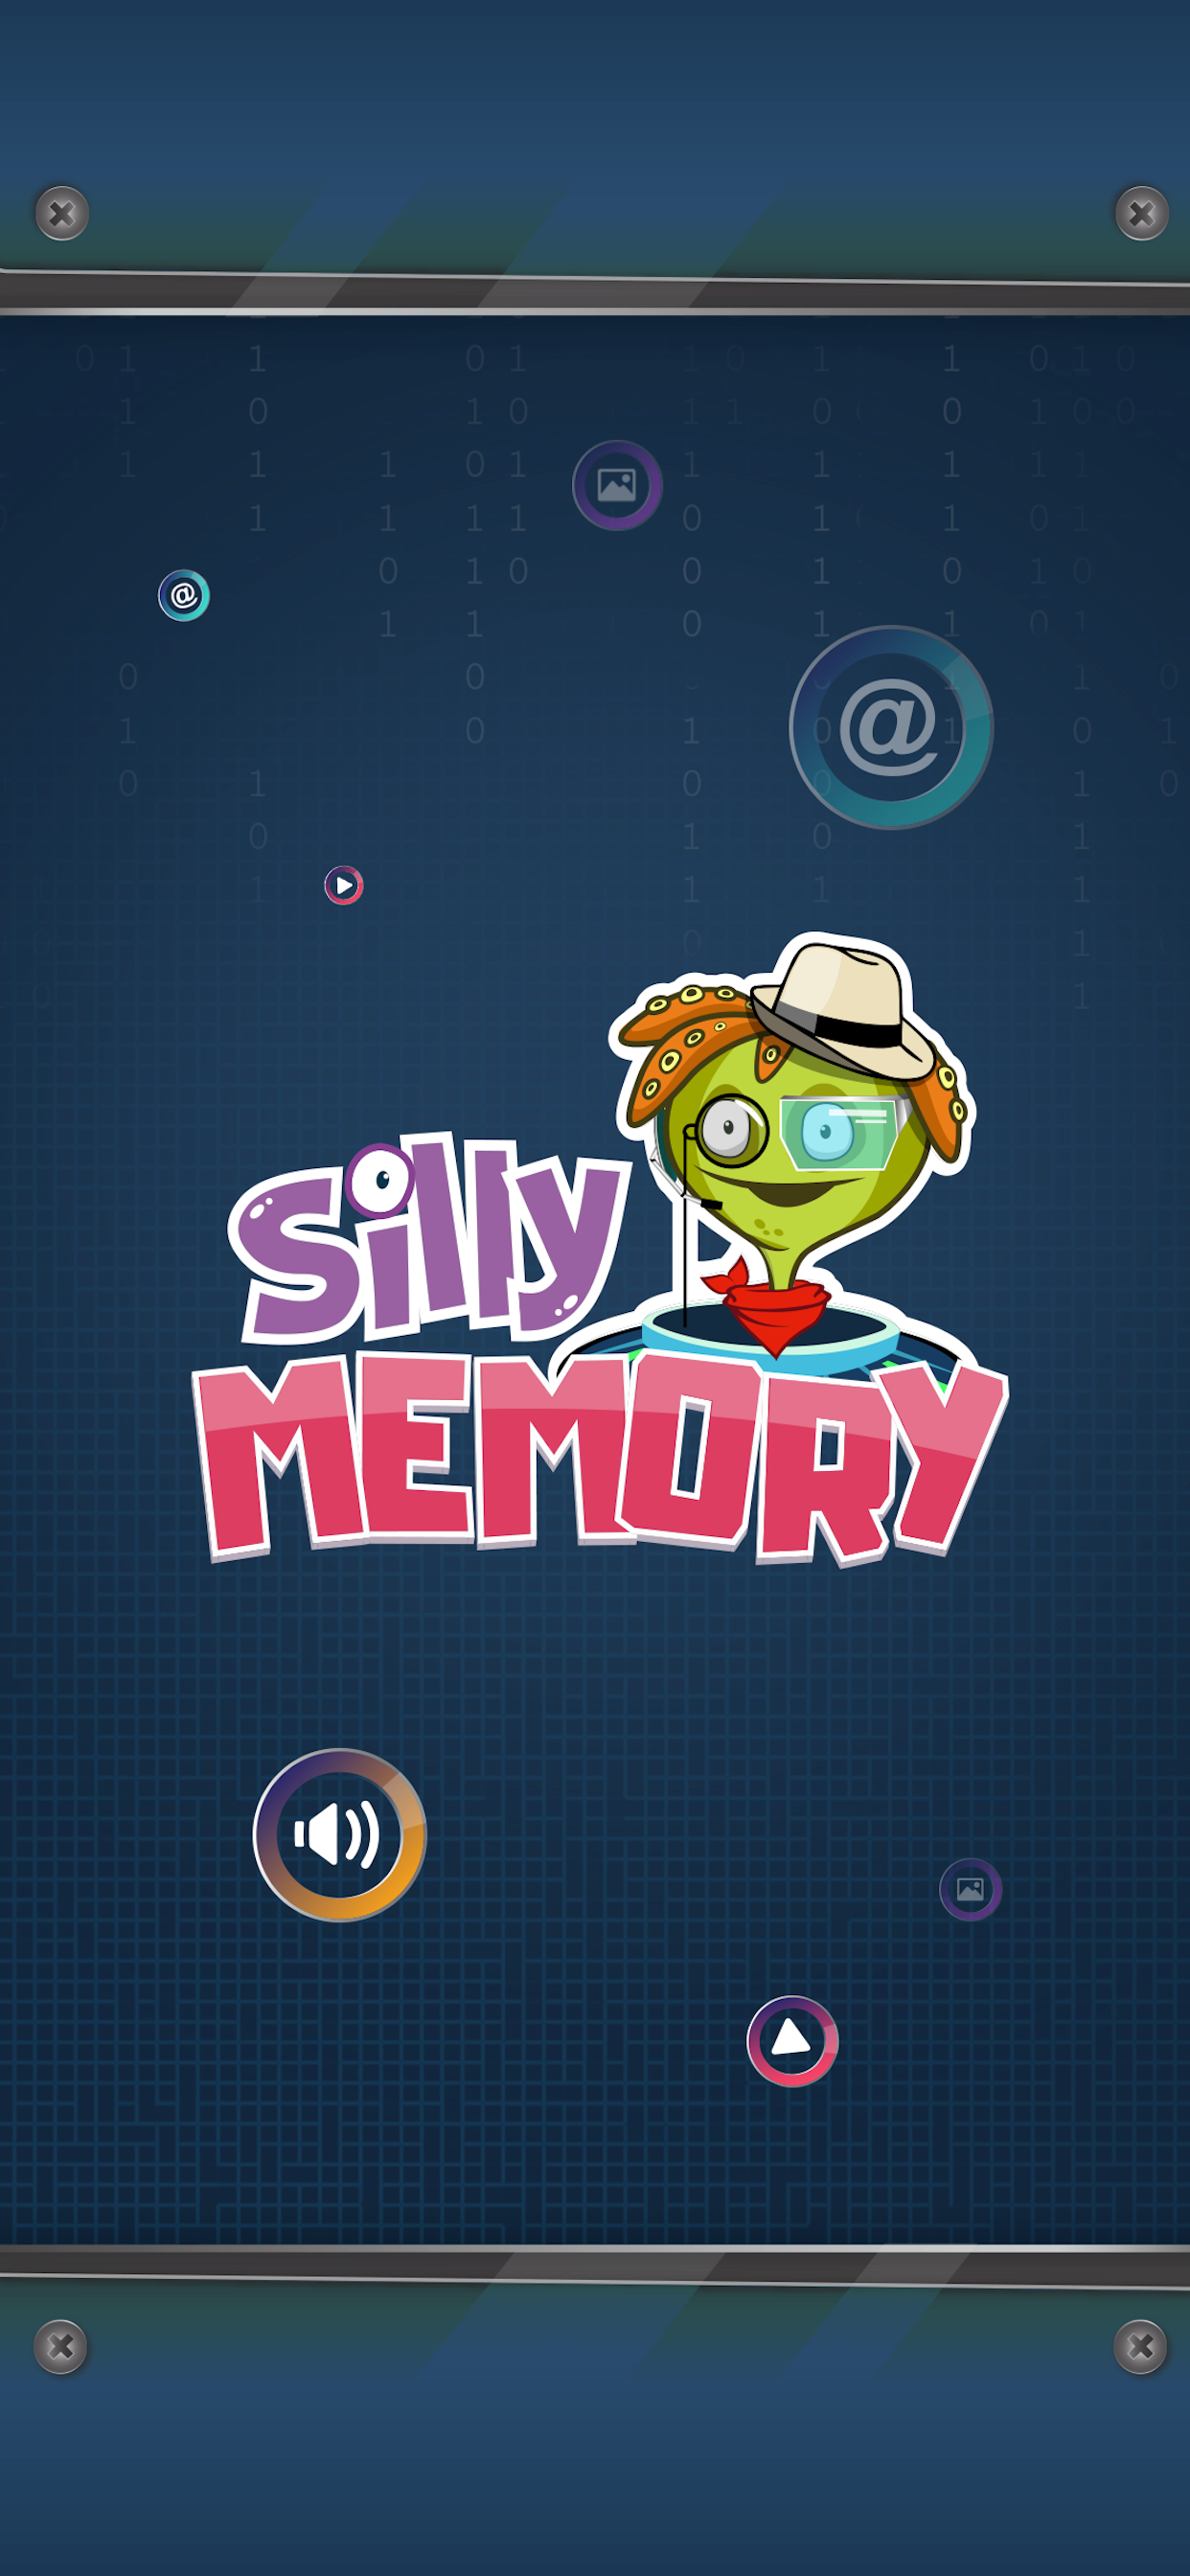 Silly Memory